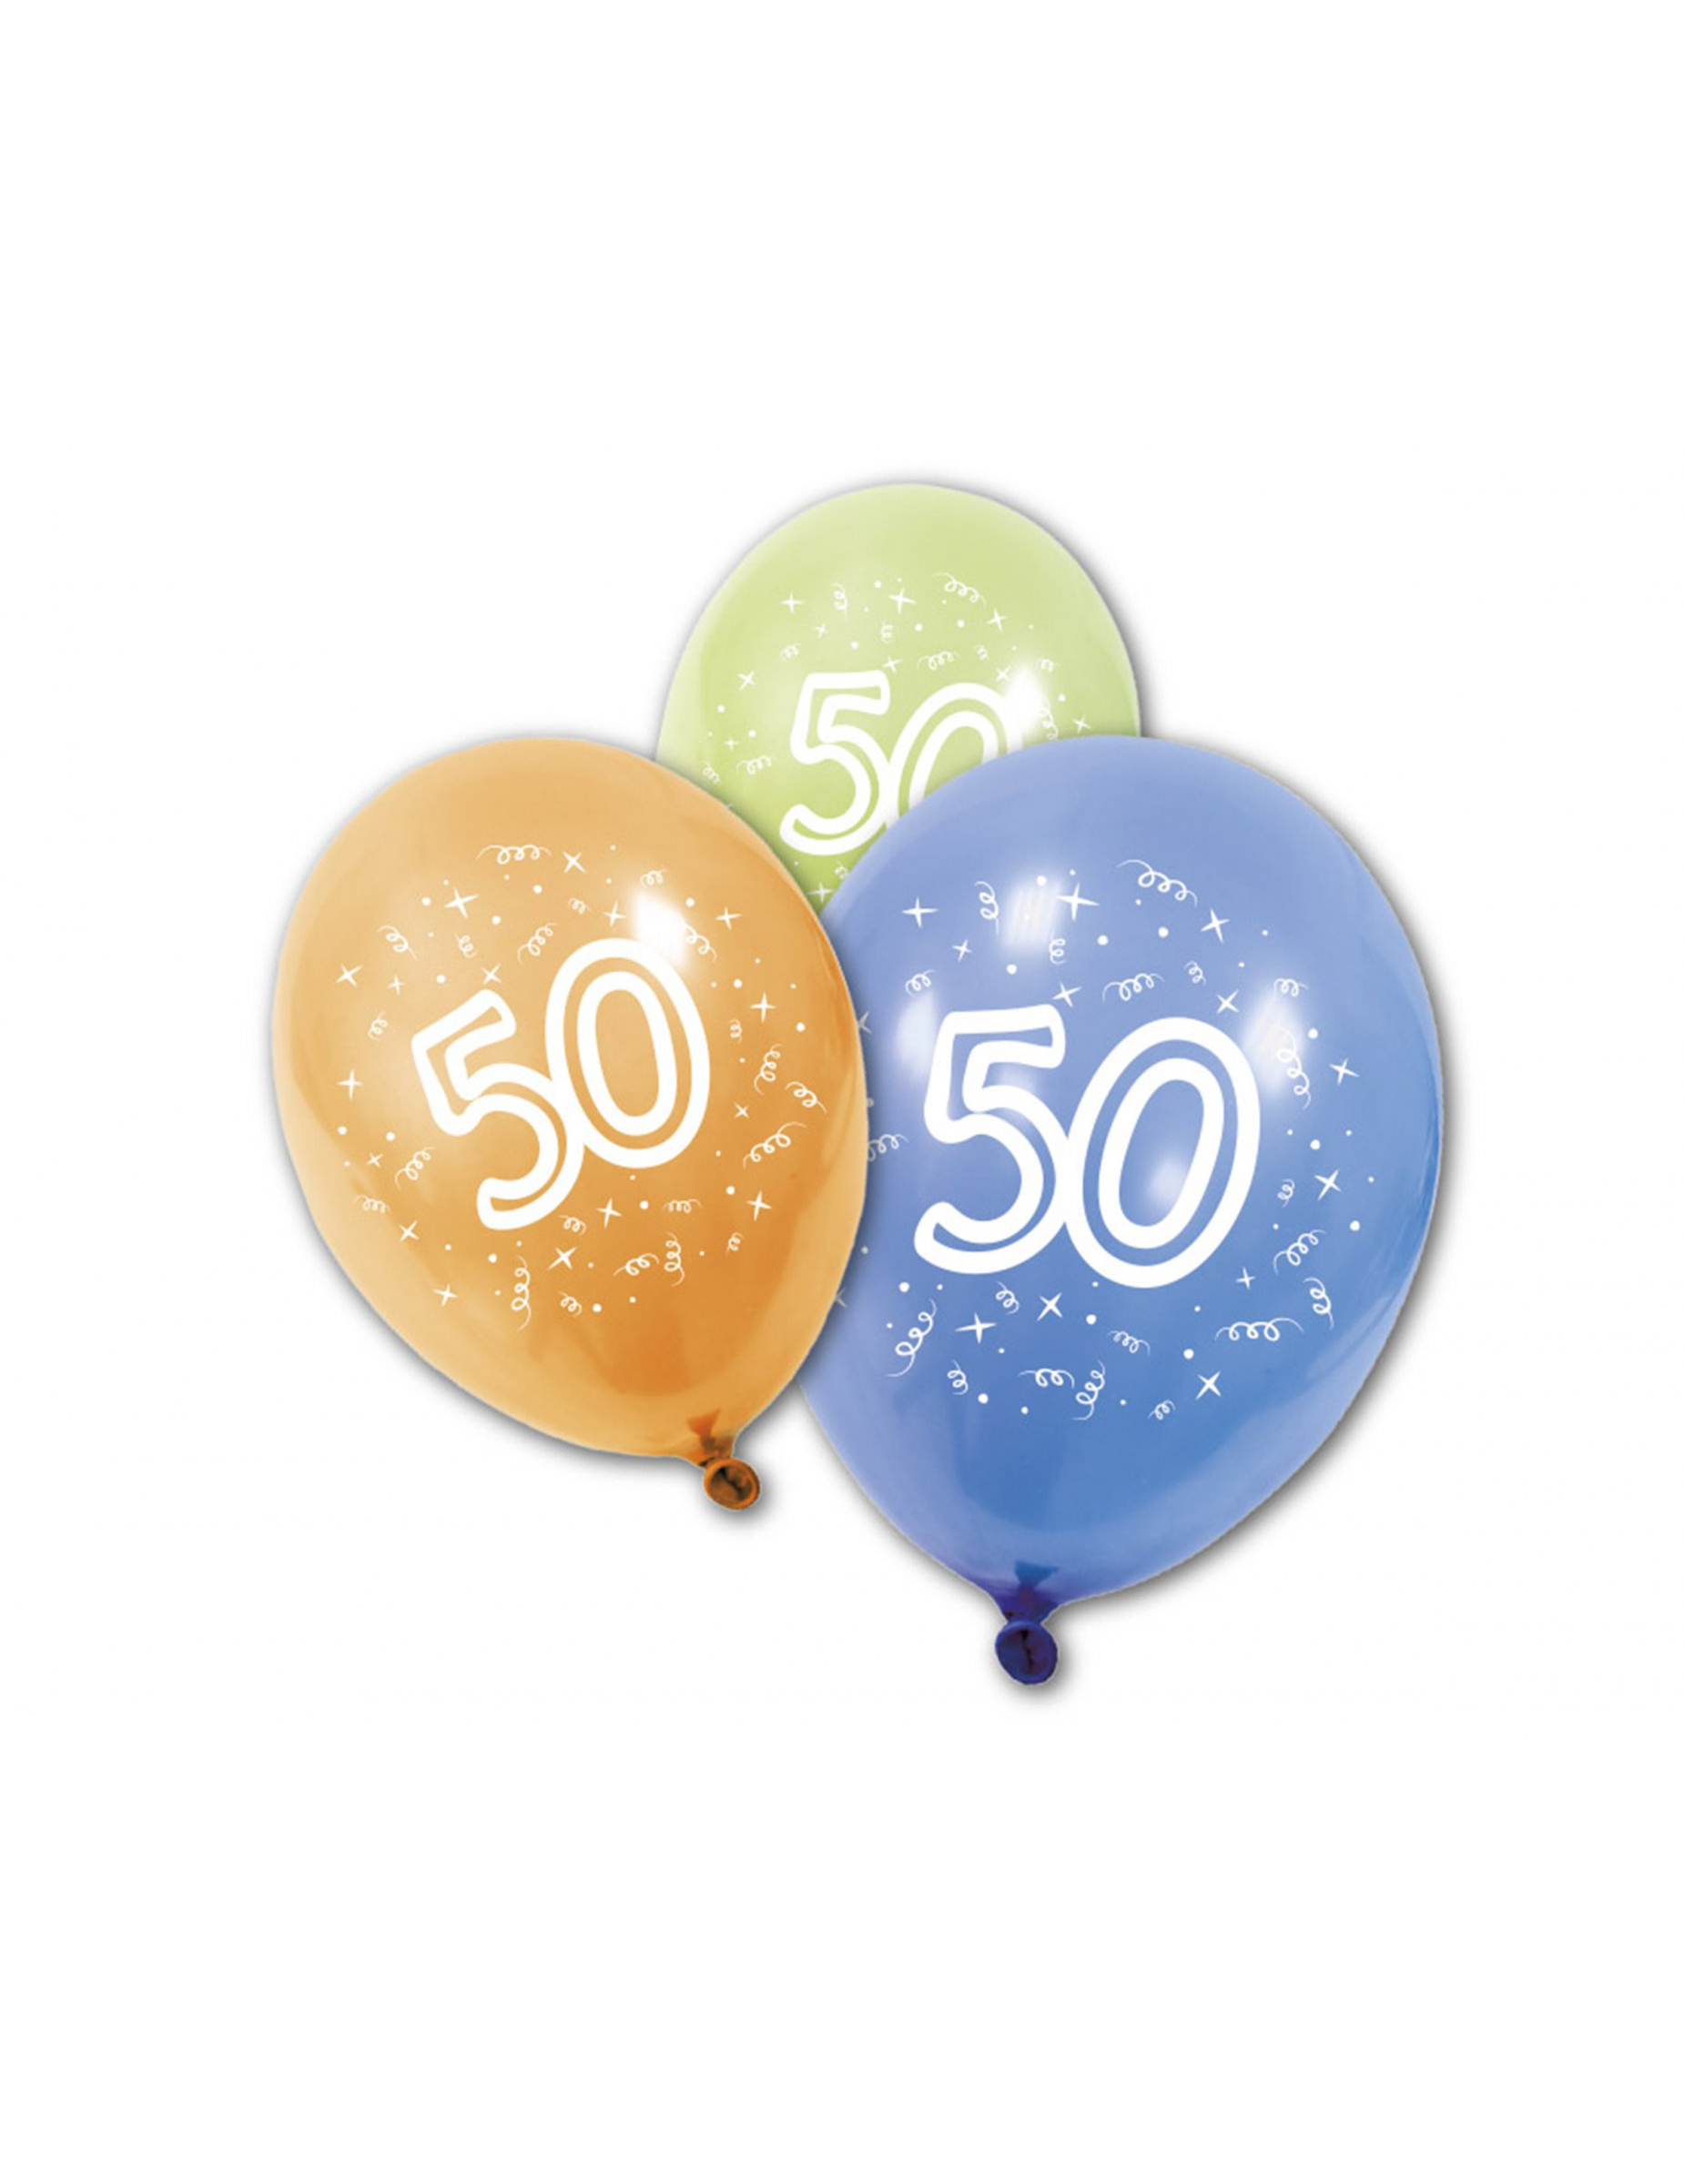 8 ballons anniversaire 50 ans deguise toi achat de decoration animation. Black Bedroom Furniture Sets. Home Design Ideas